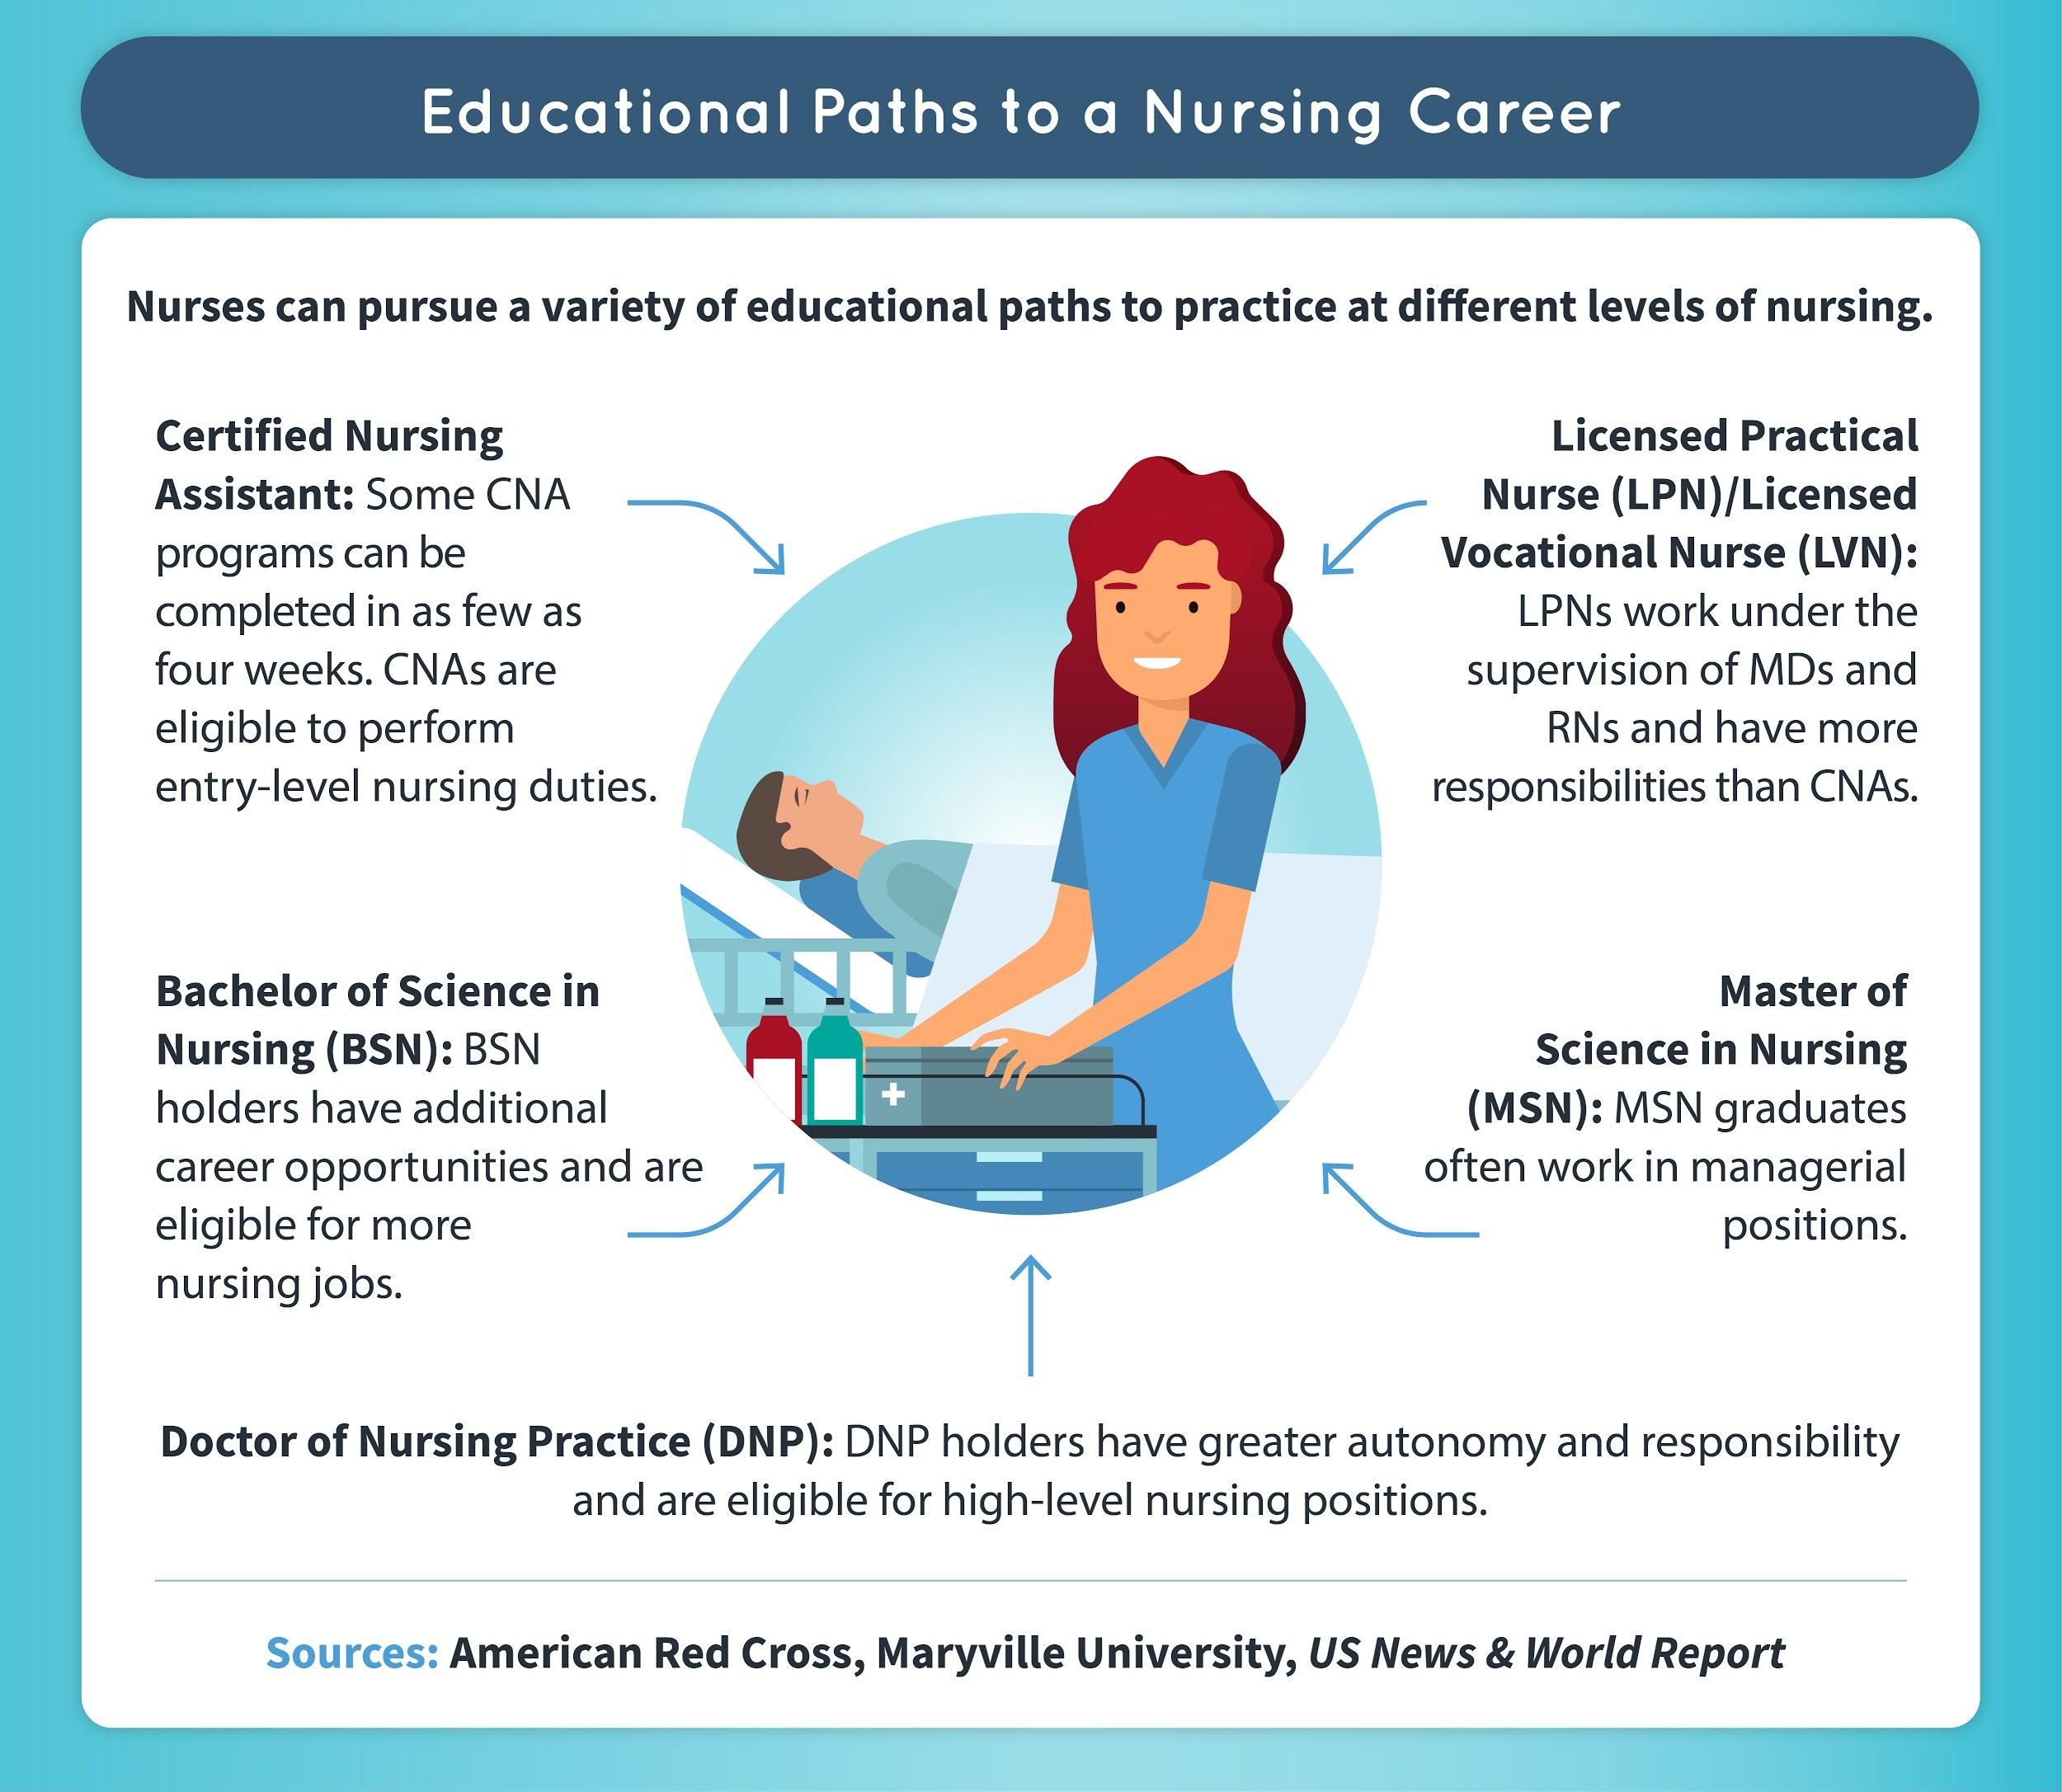 Nurses can pursue a variety of educational paths to practice at different levels of nursing.